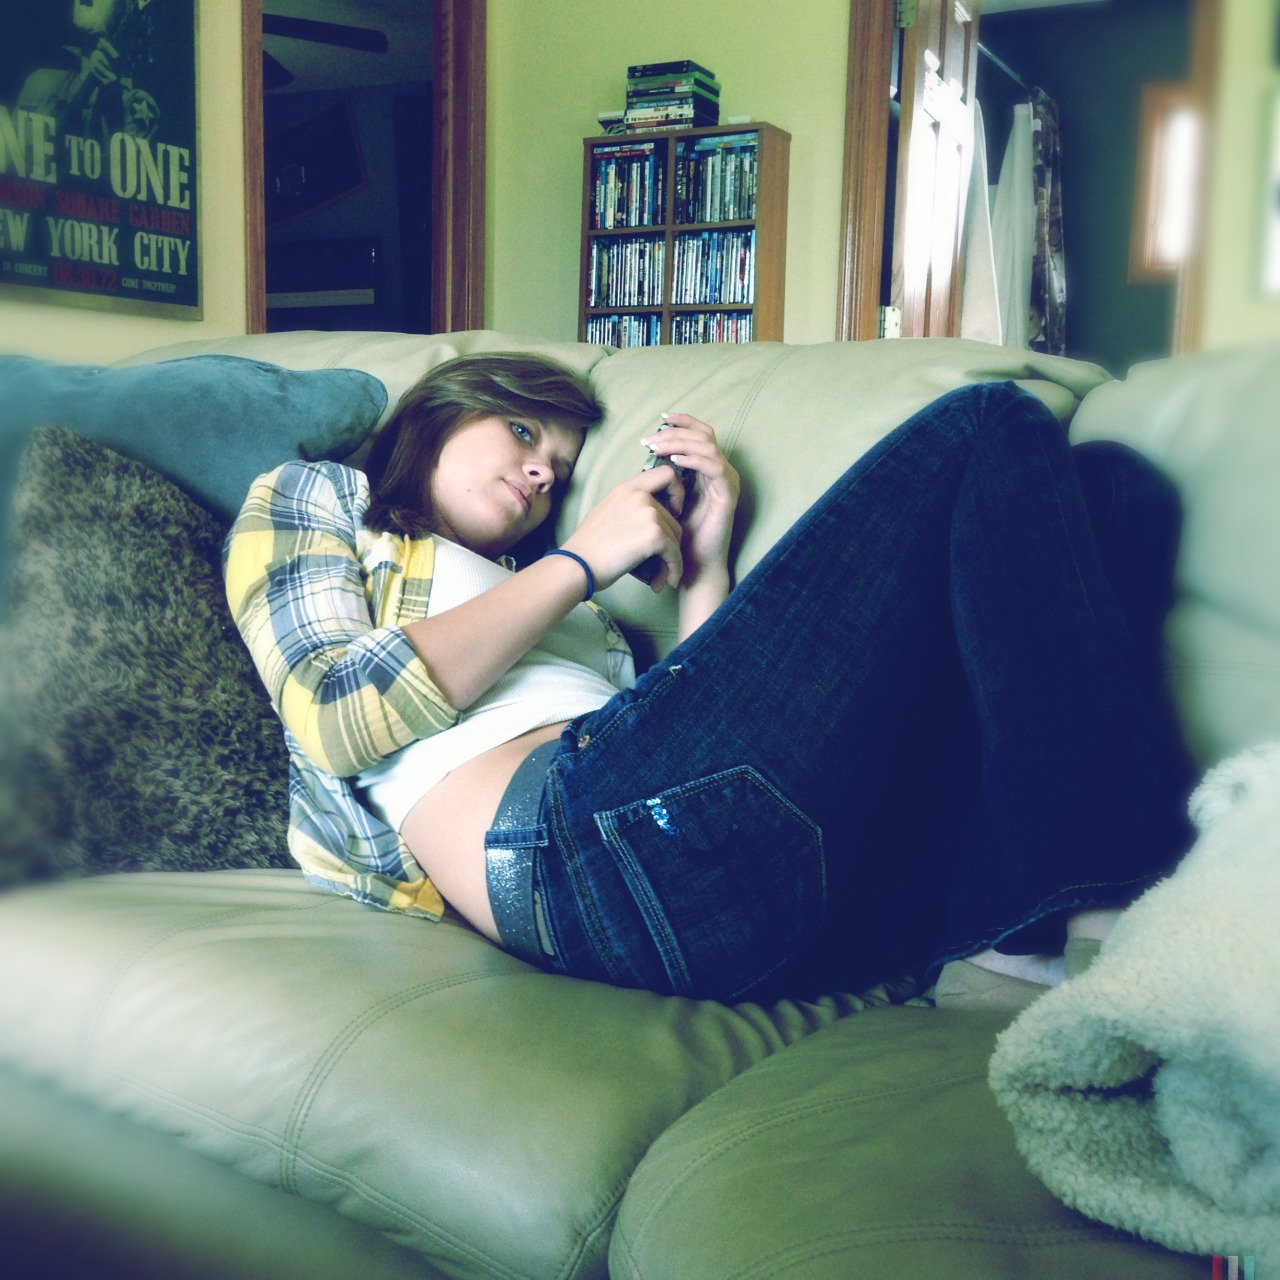 My girl's looking real serious on that iPhone….and sexy. #girlfriend #iphone #love #serious #portrait @erinlindsey39